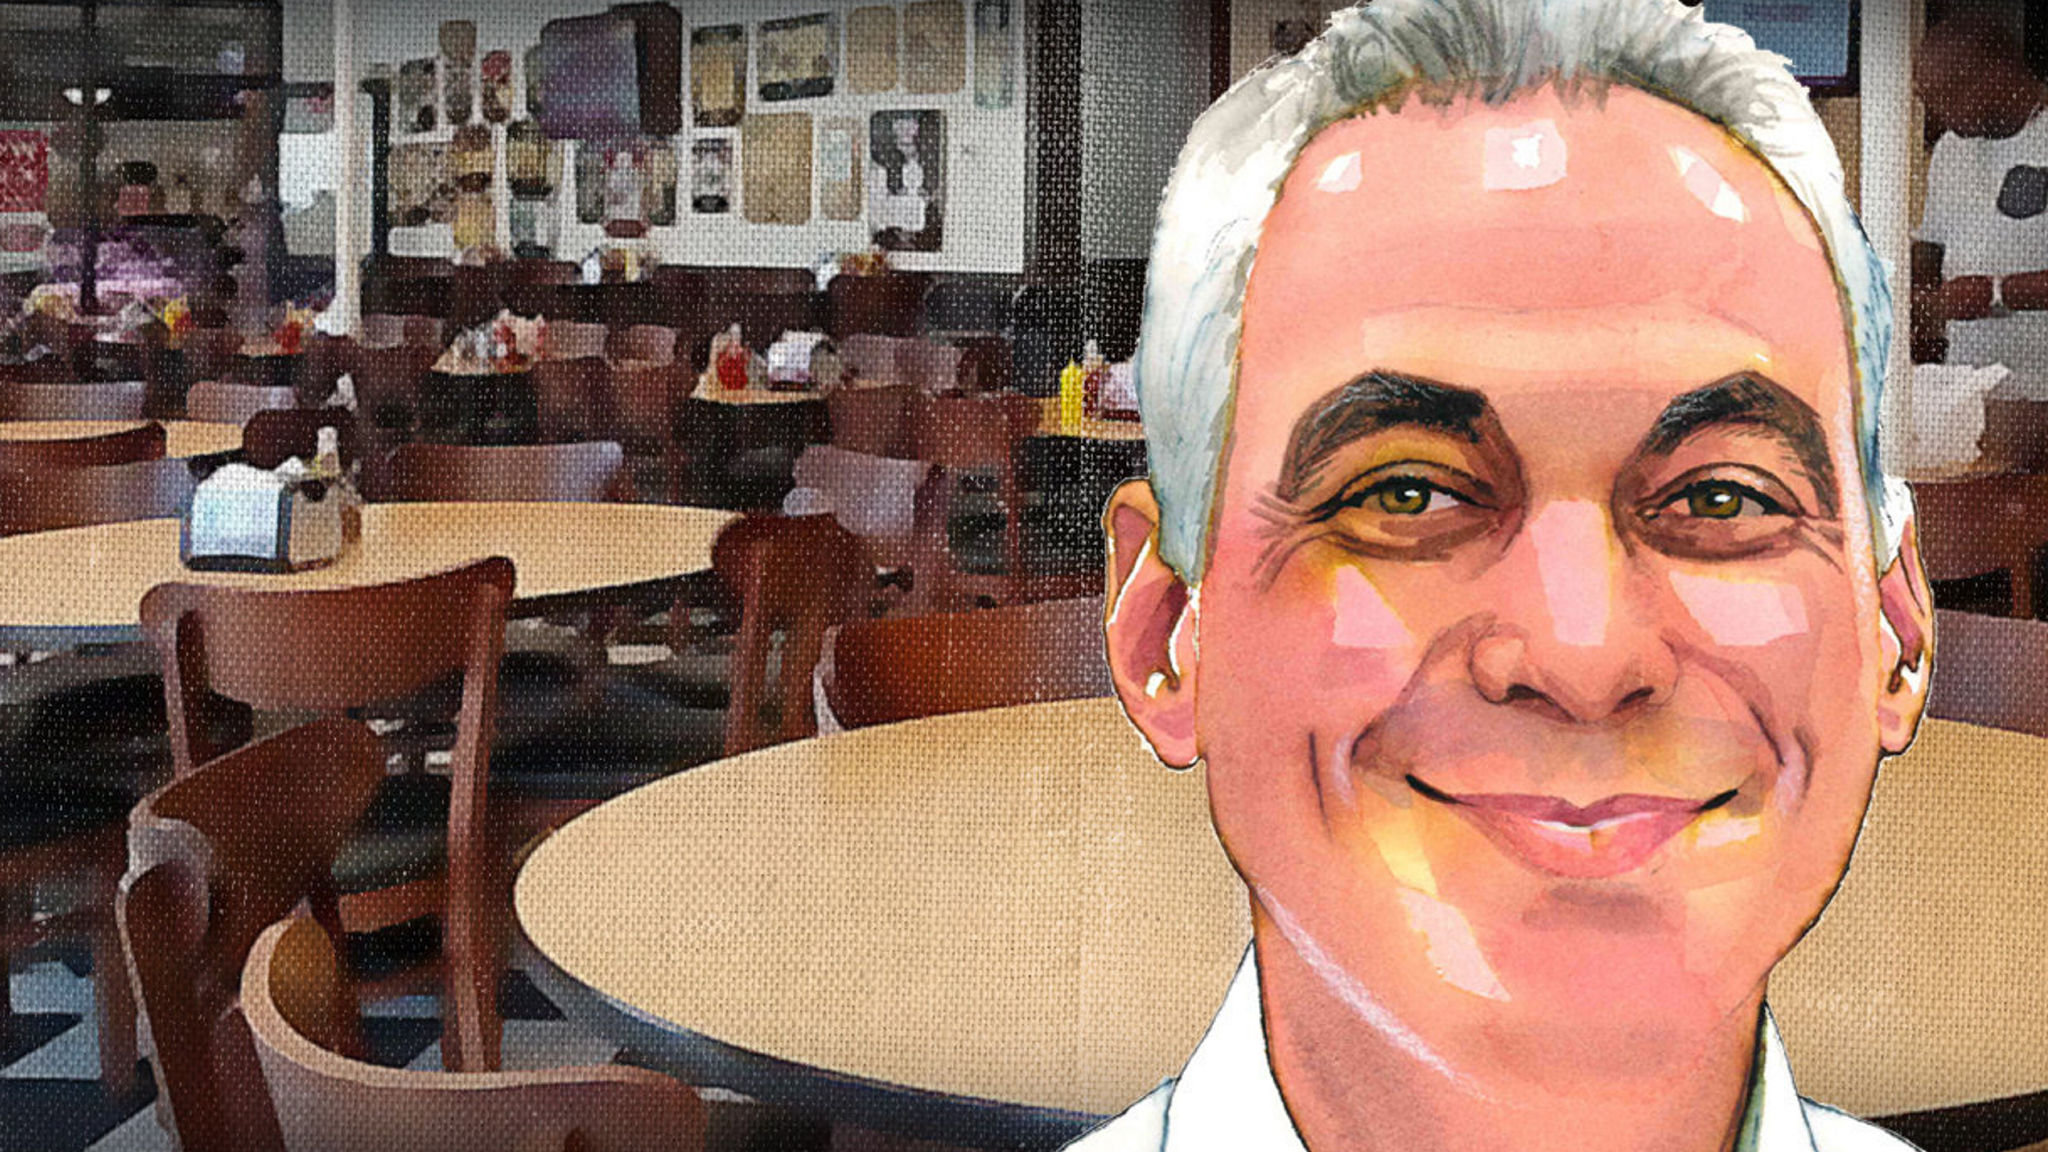 Rahm Emanuel: 'There is more to us than our divisions'